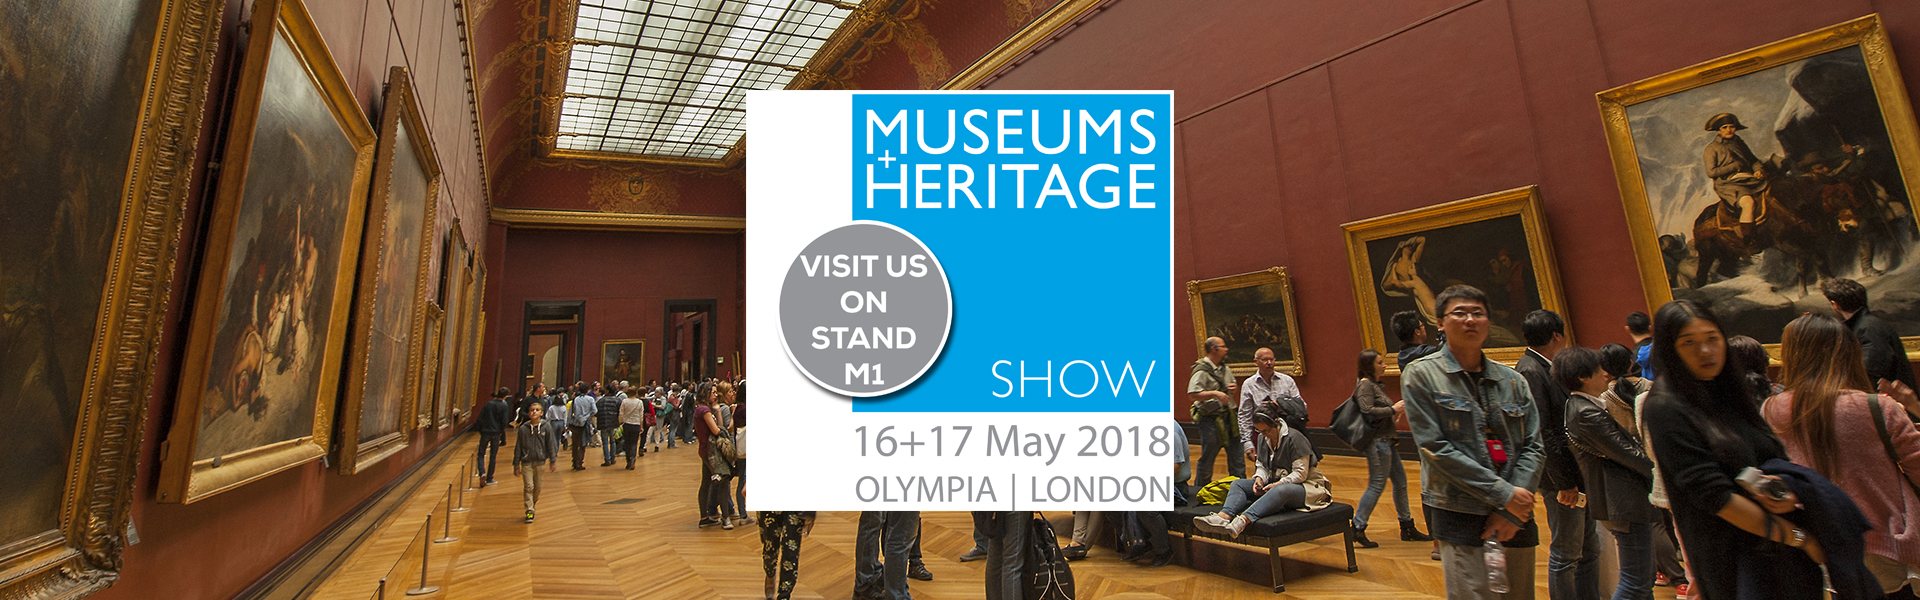 museums_heritage_banner